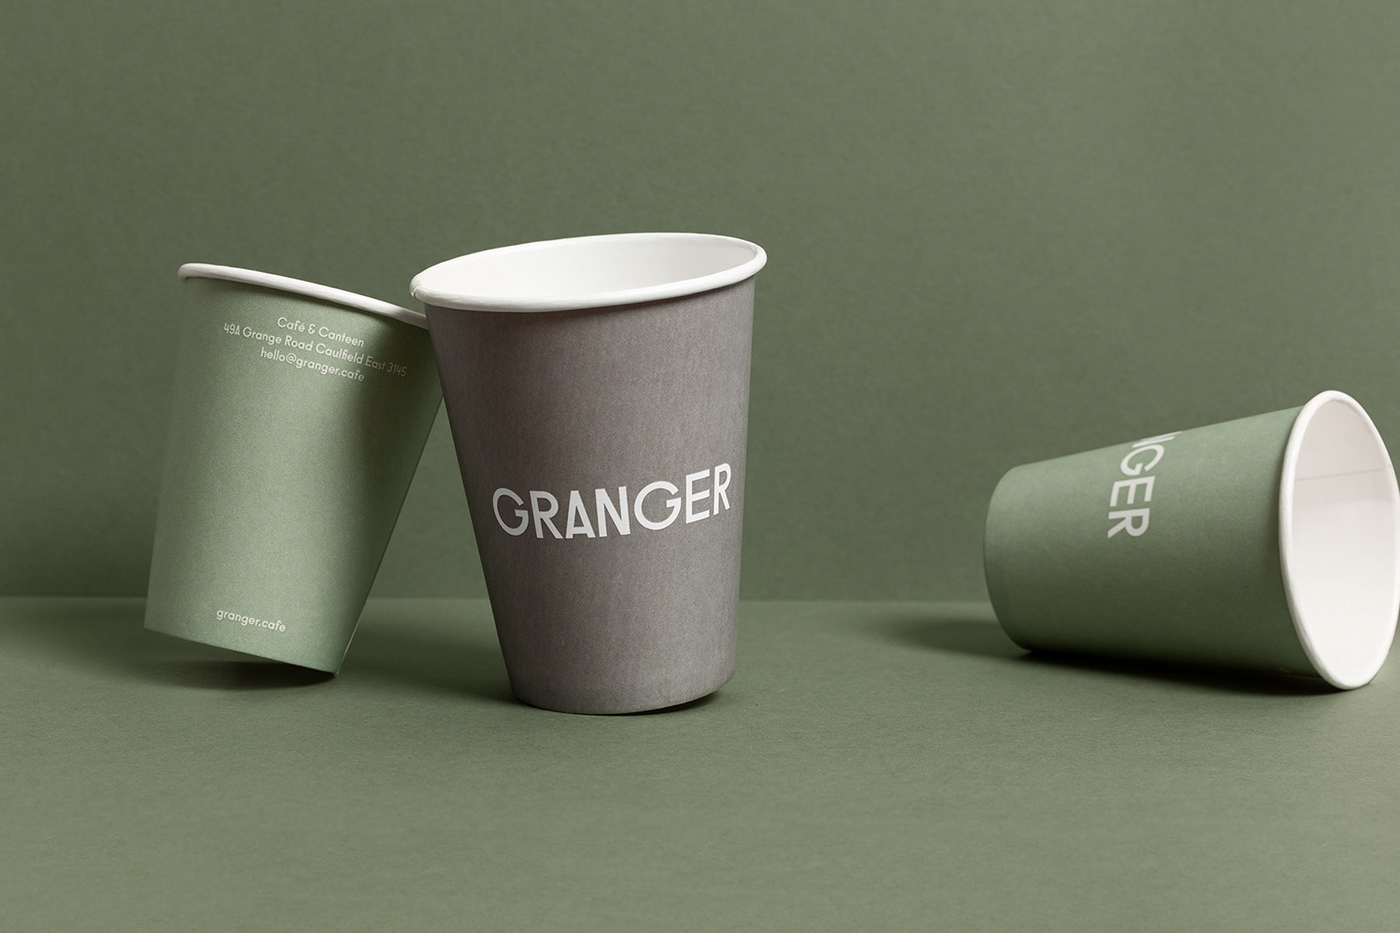 granger cafe business card coffee cup menu Signage green